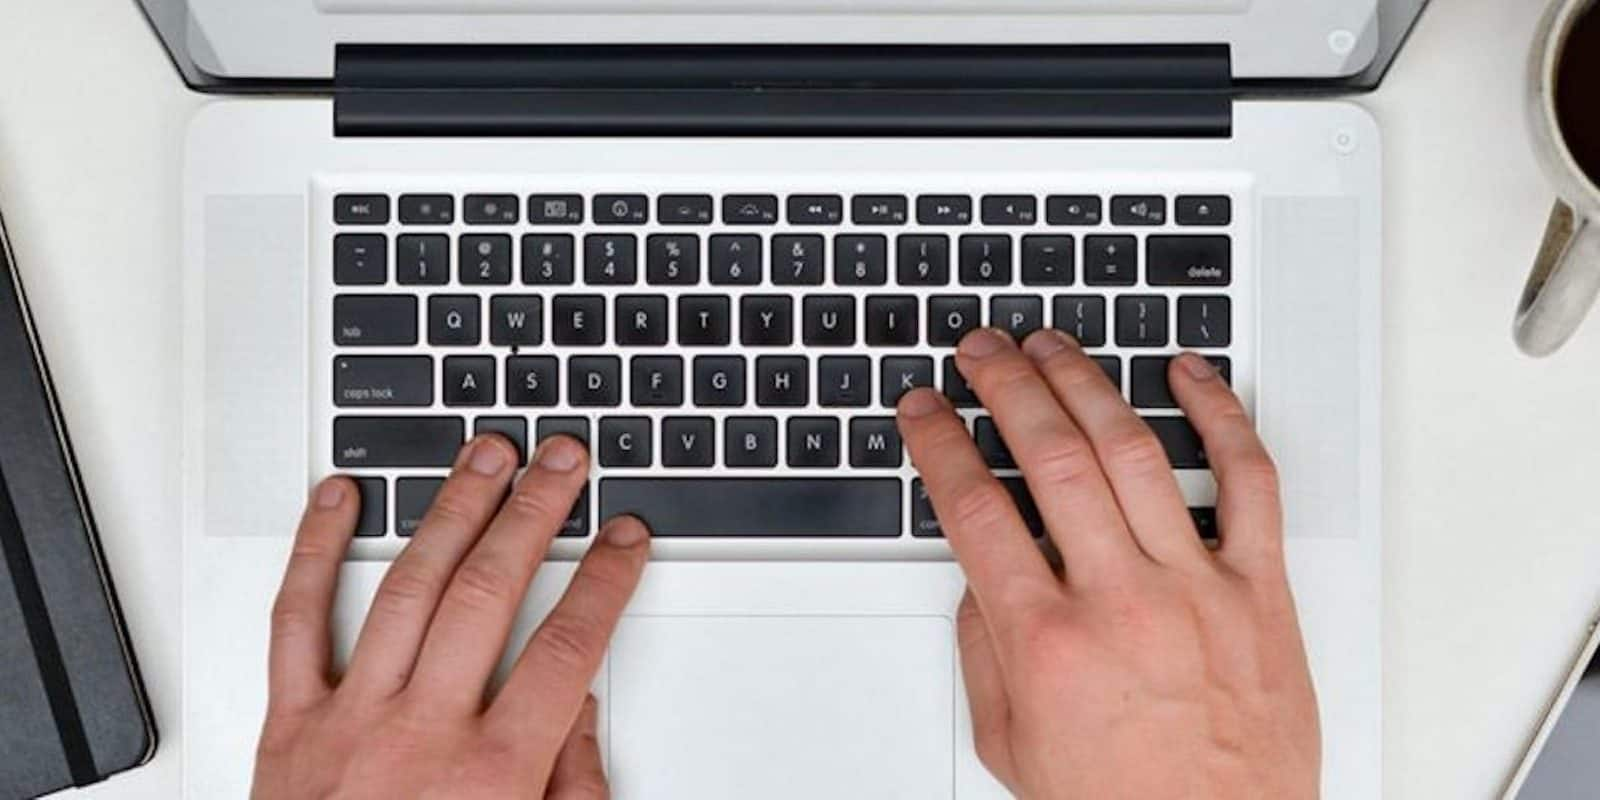 Turn your keyboard into a consistent source of income by becoming a freelance copywriter.